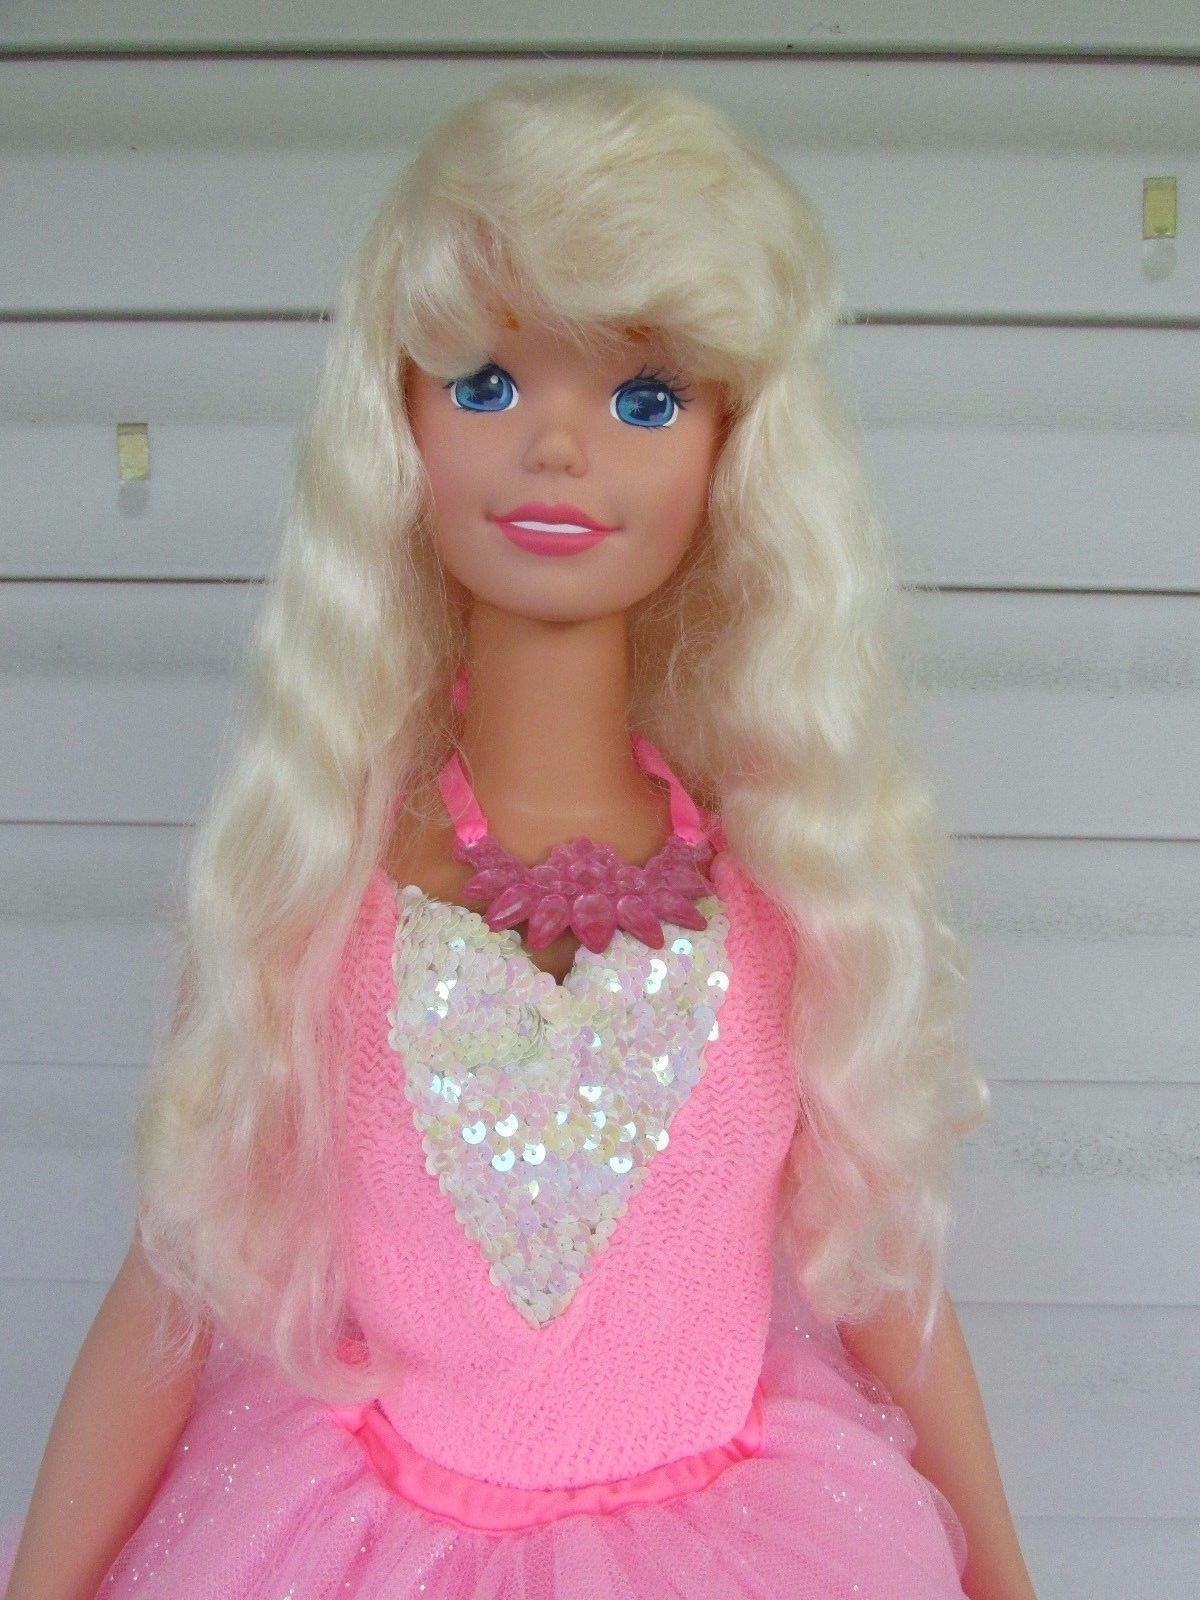 We All Wanted A  U0026 39 My Size Barbie U0026 39  When We Were Young  But